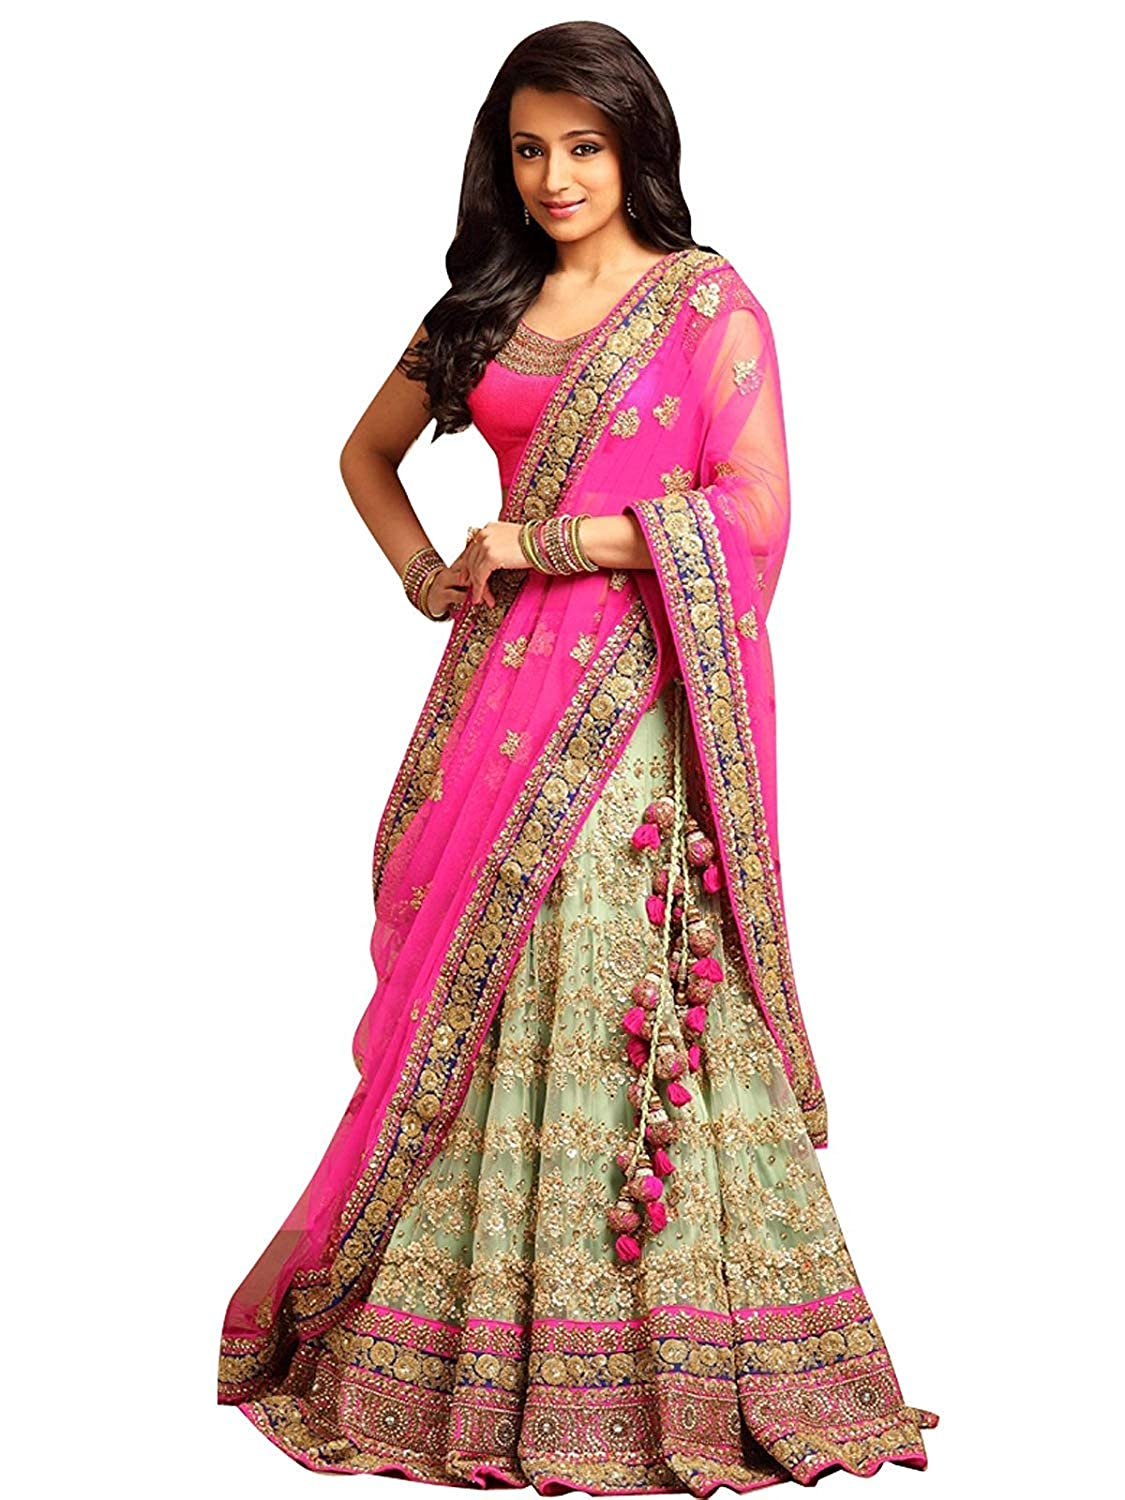 Women's Pink Color Embroidered Lehenga Choli